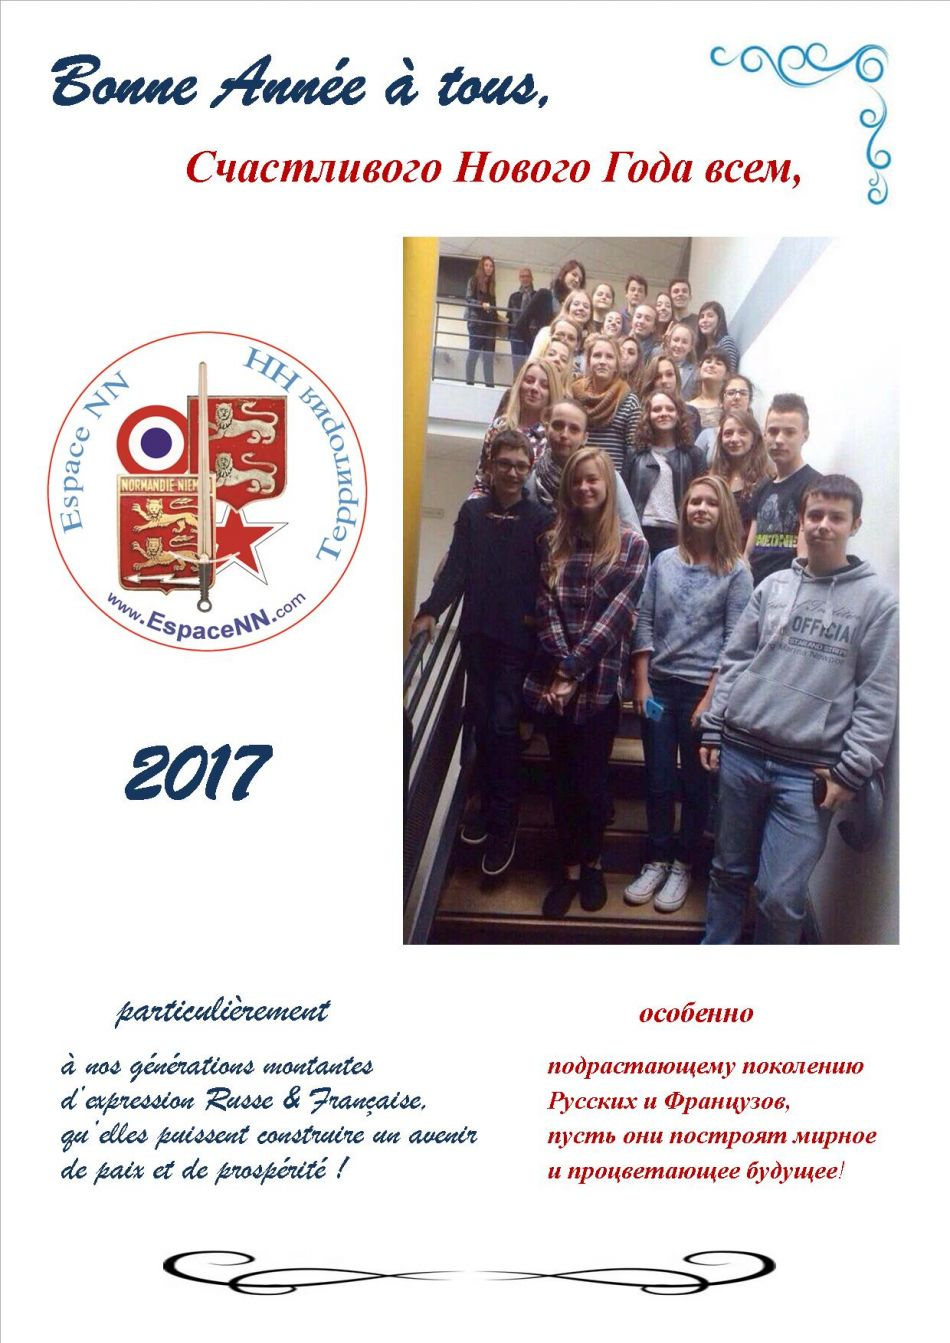 5-Voeux 2017 Gnrations montantes.